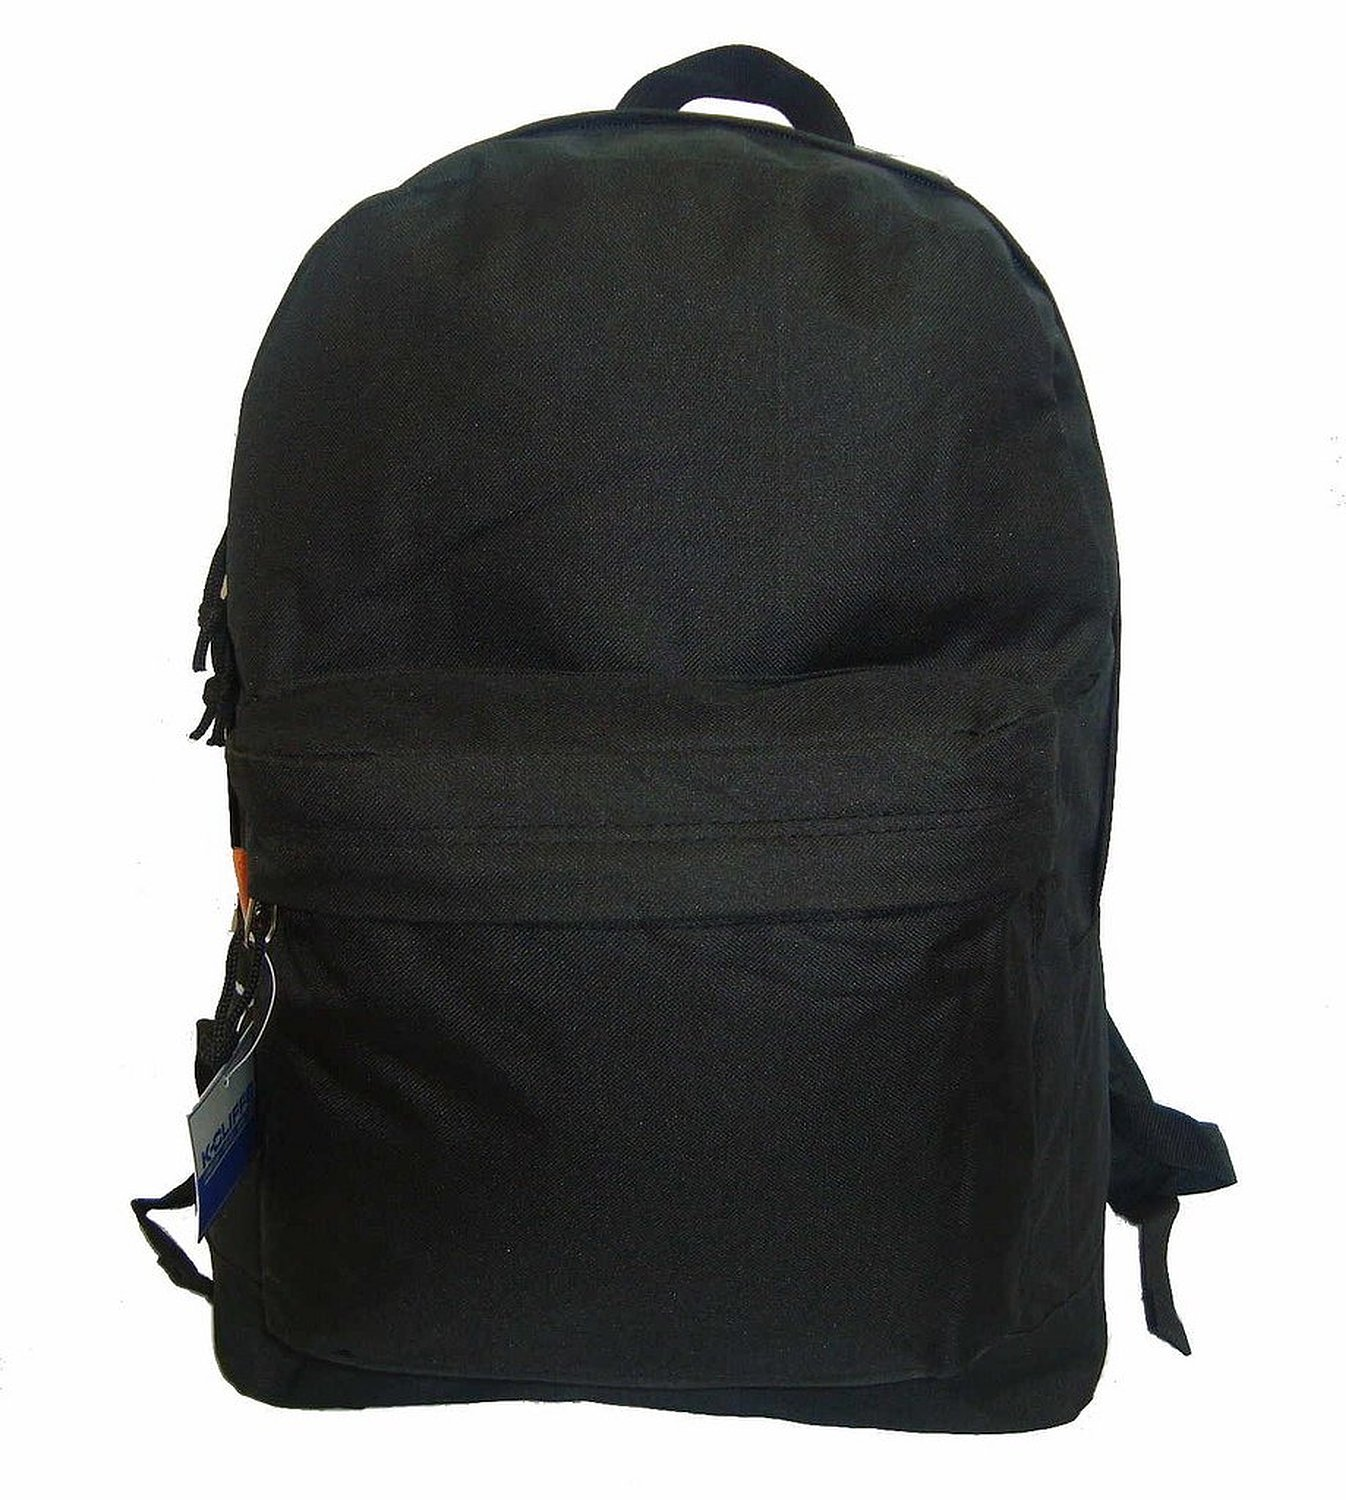 Amazon.com: 18inch Simple/Basic Backpack Book bag: Clothing